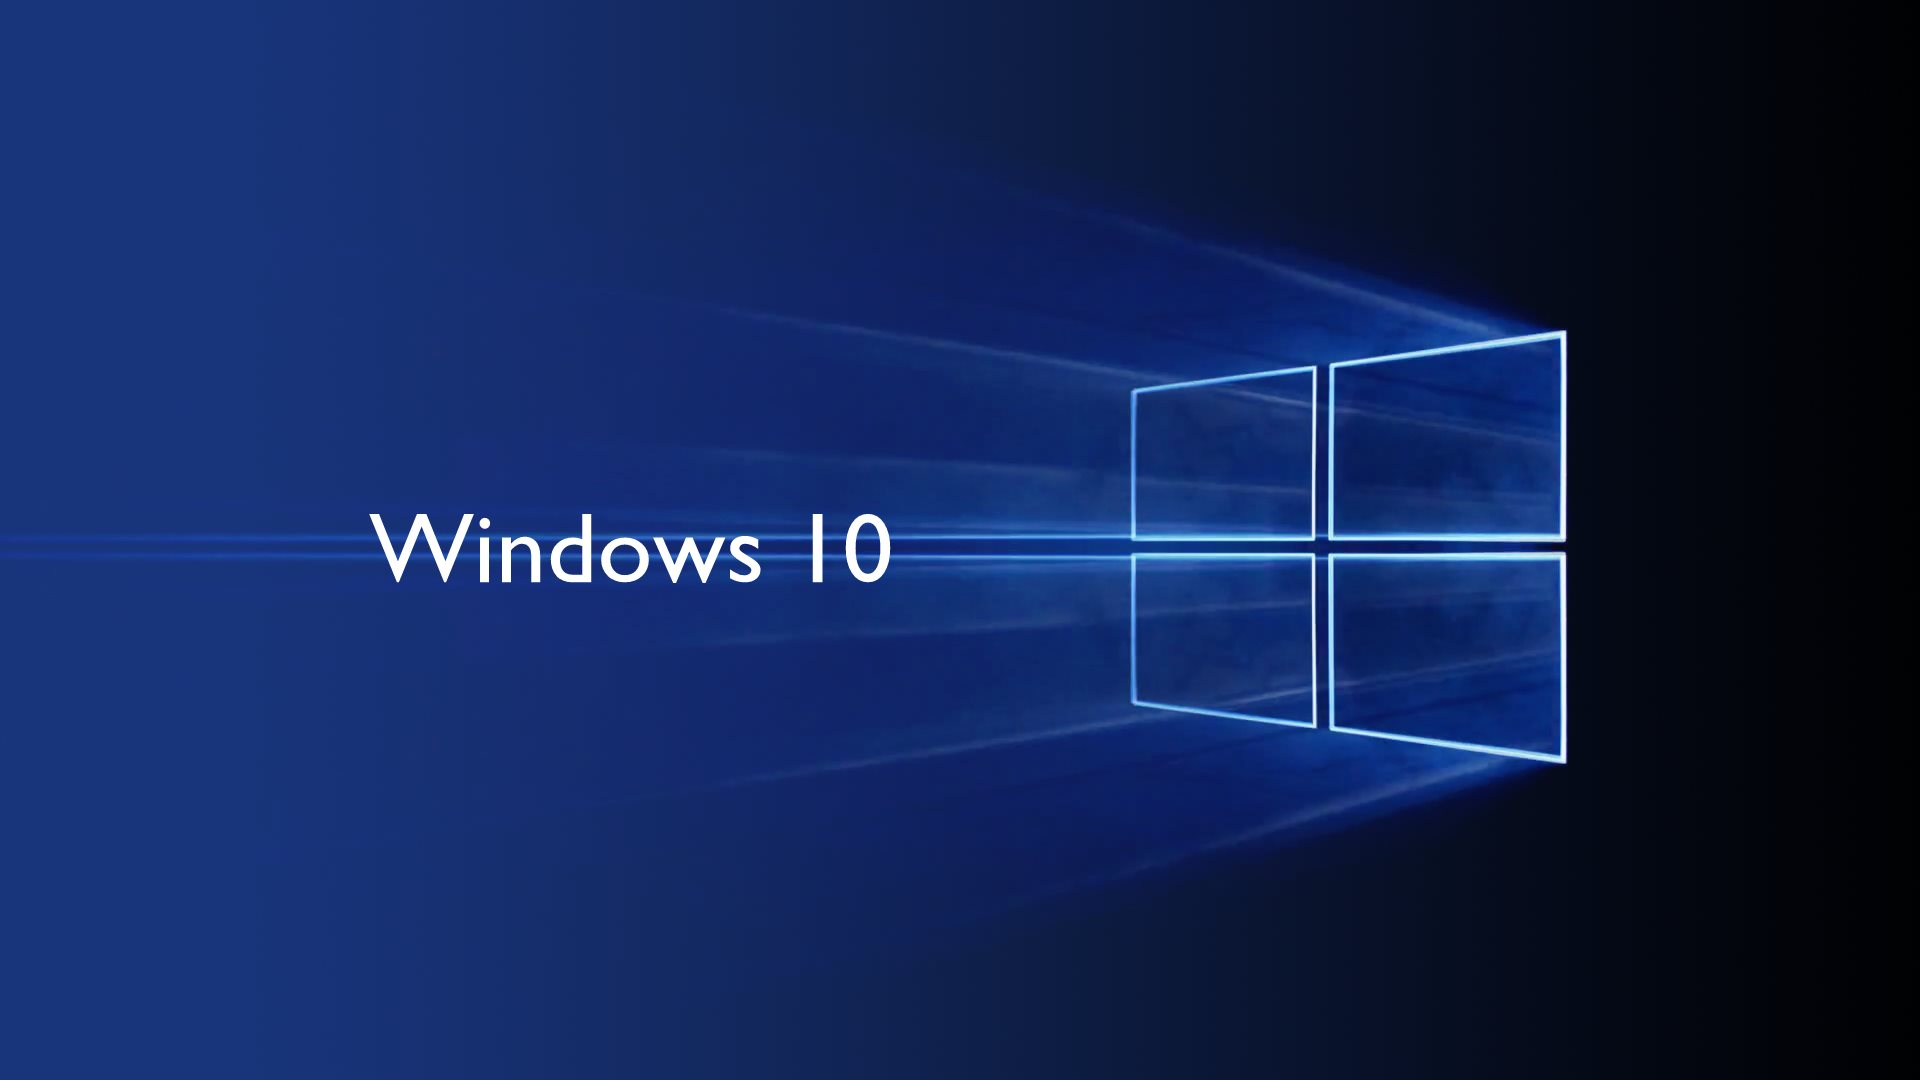 windows10 logo2